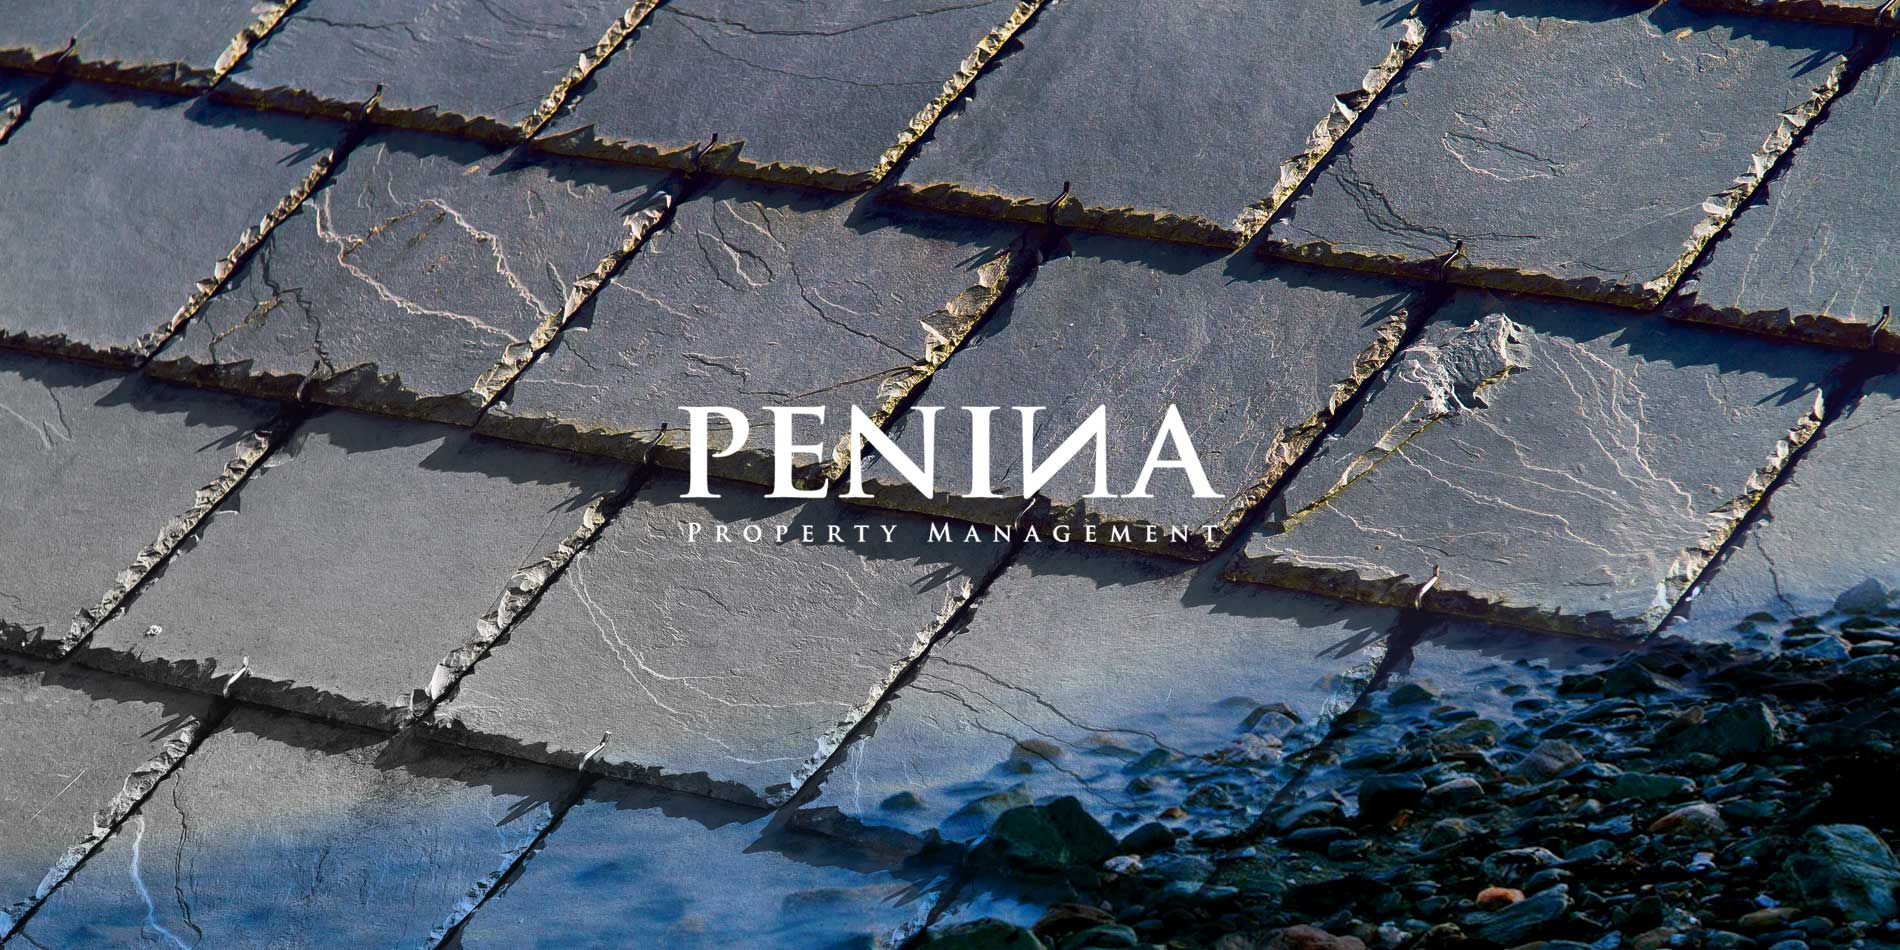 Penina Property Management